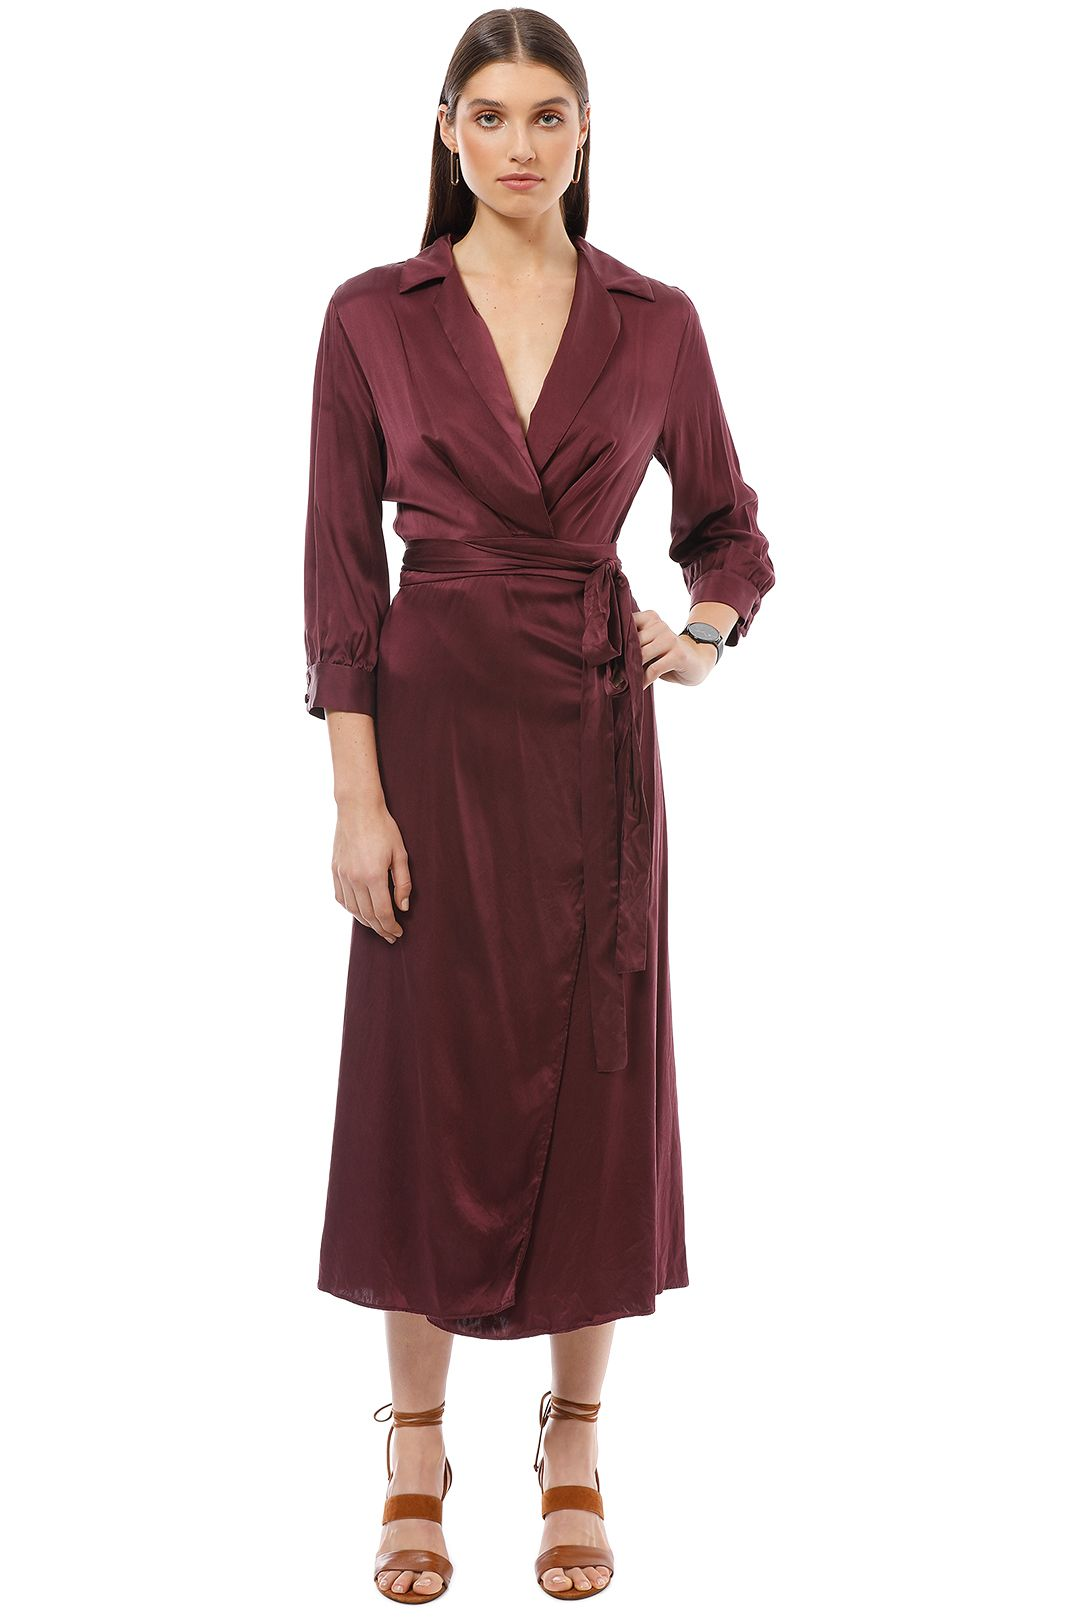 Bec and Bridge - Linda Wrap Dress - Burgundy - Front